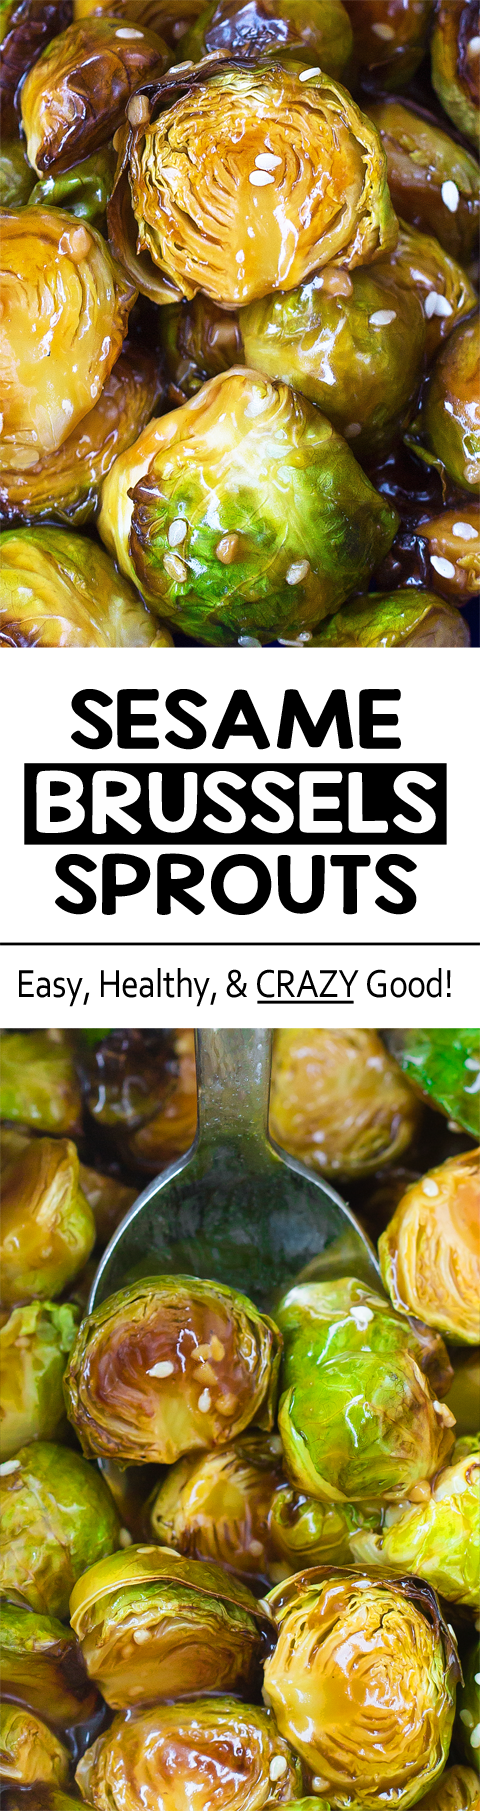 This recipe will seriously make you love brussels sprouts!